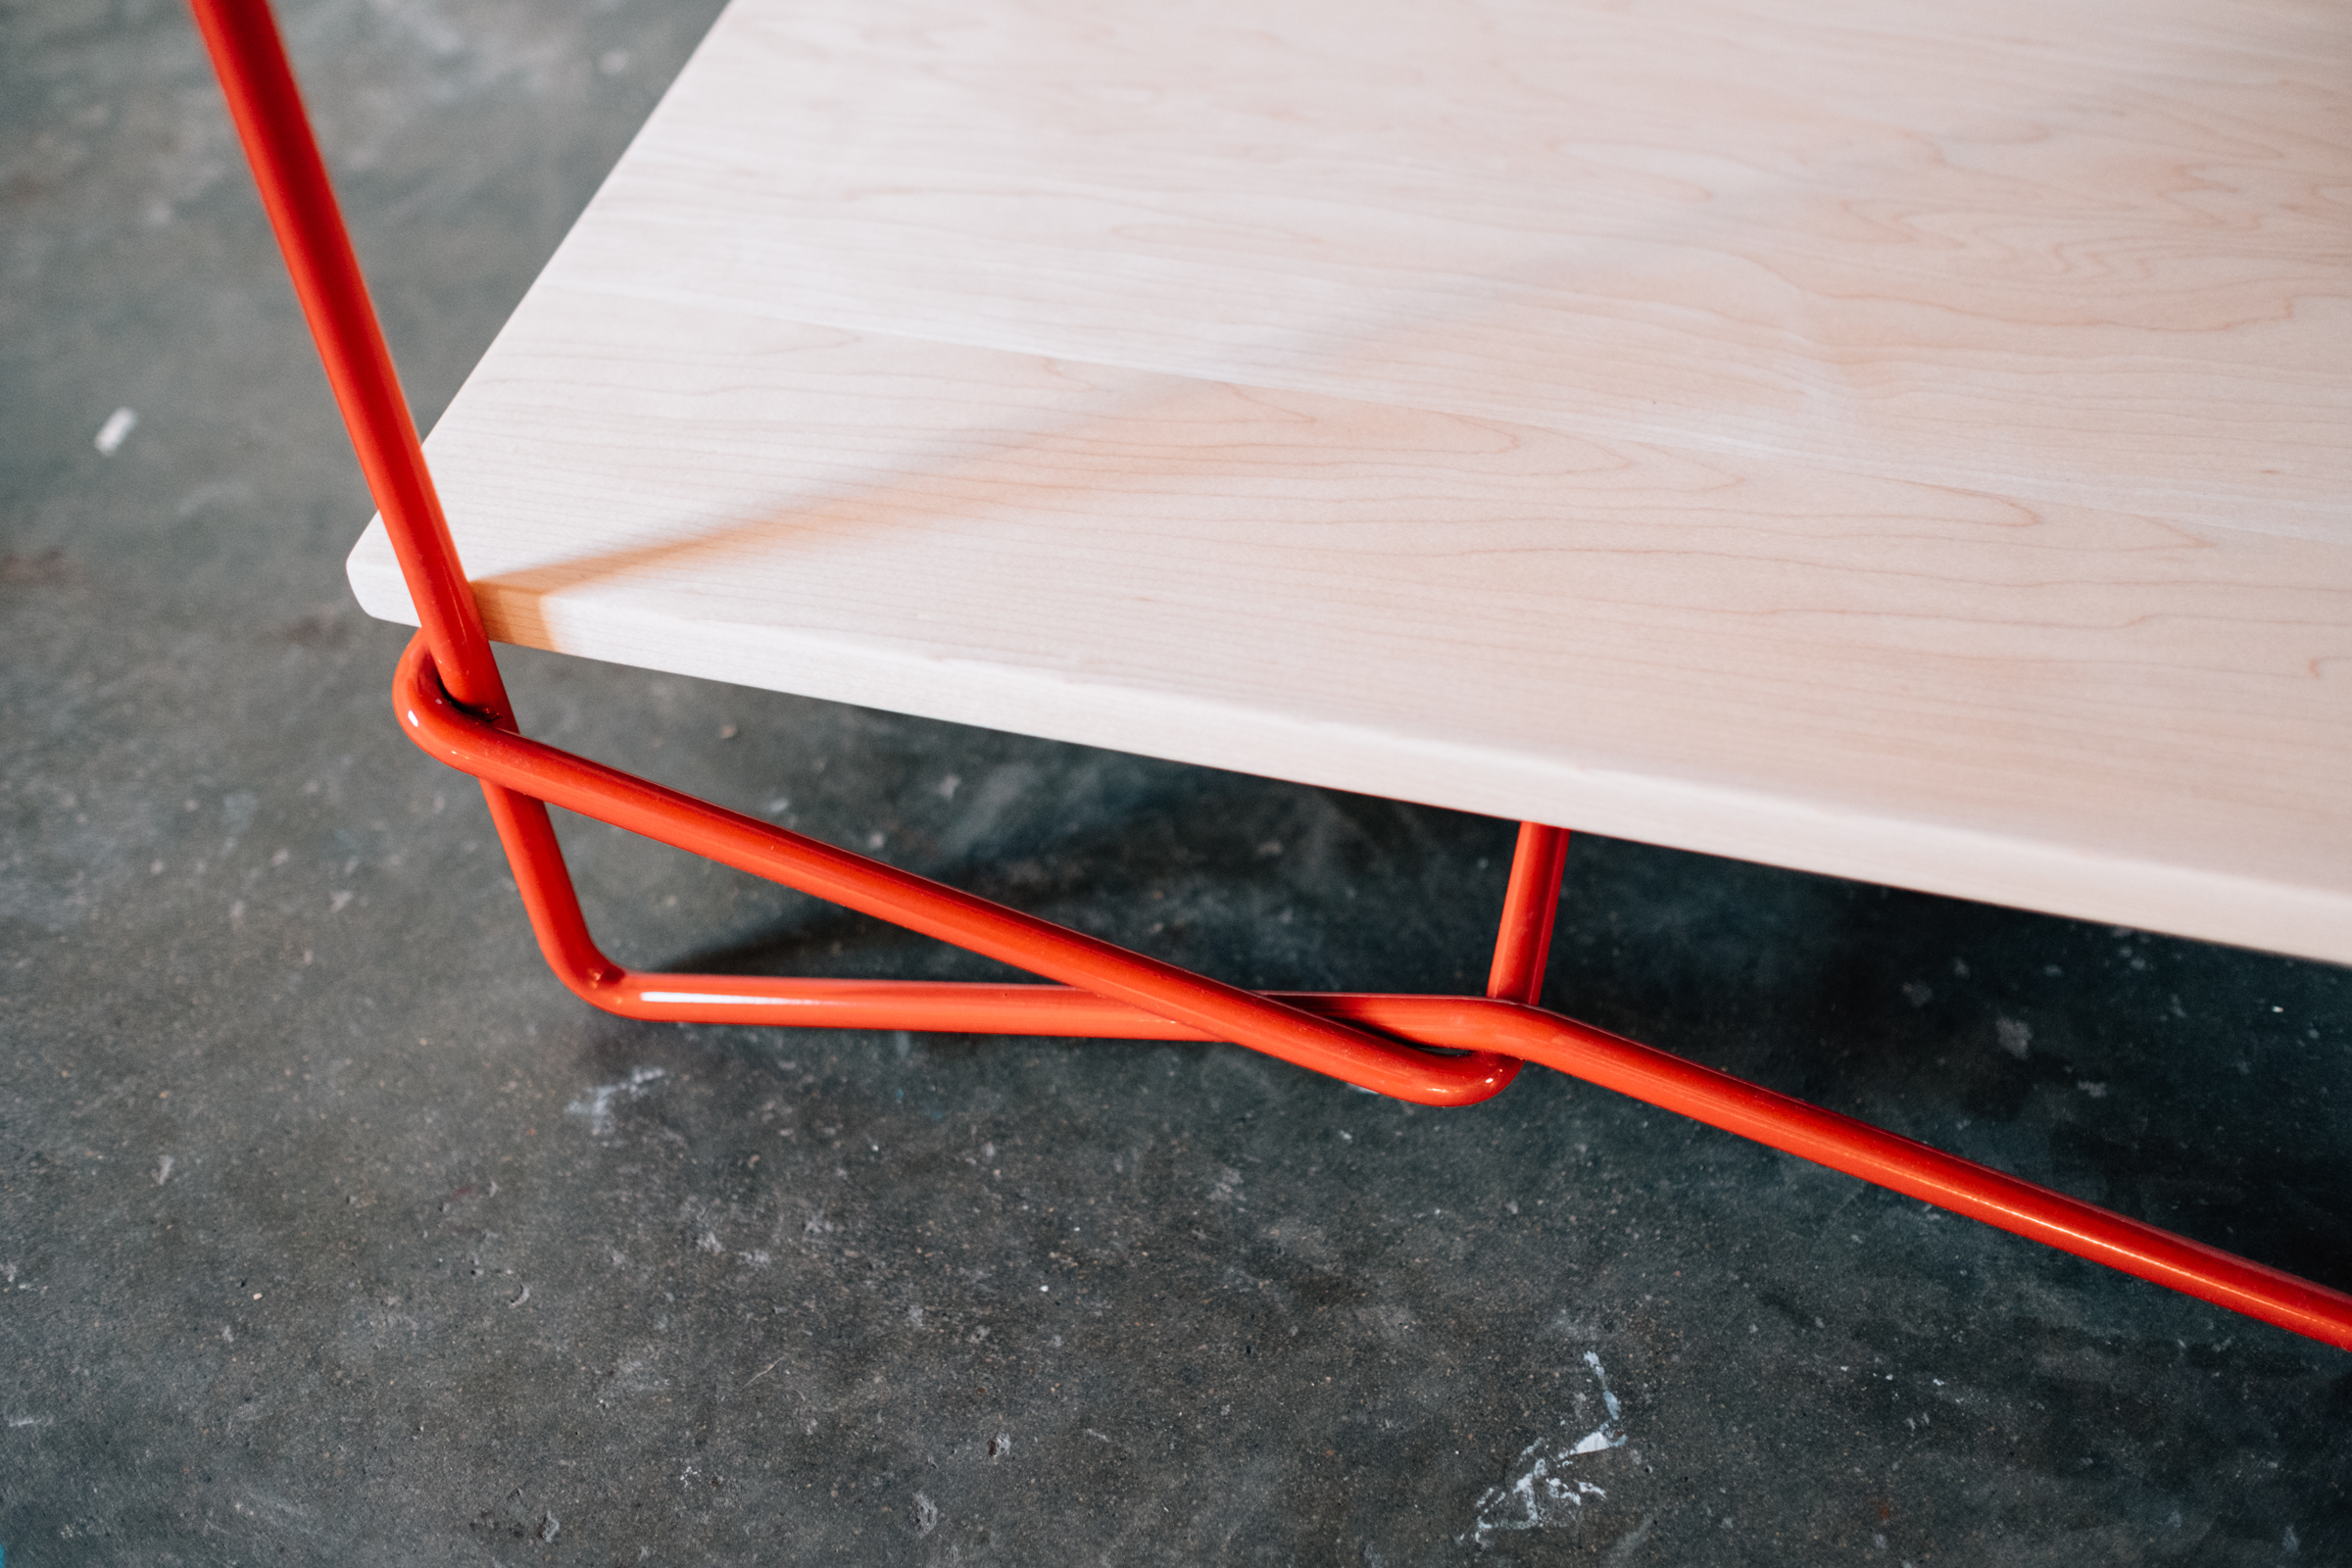 Stools Chairs Table-38.jpg